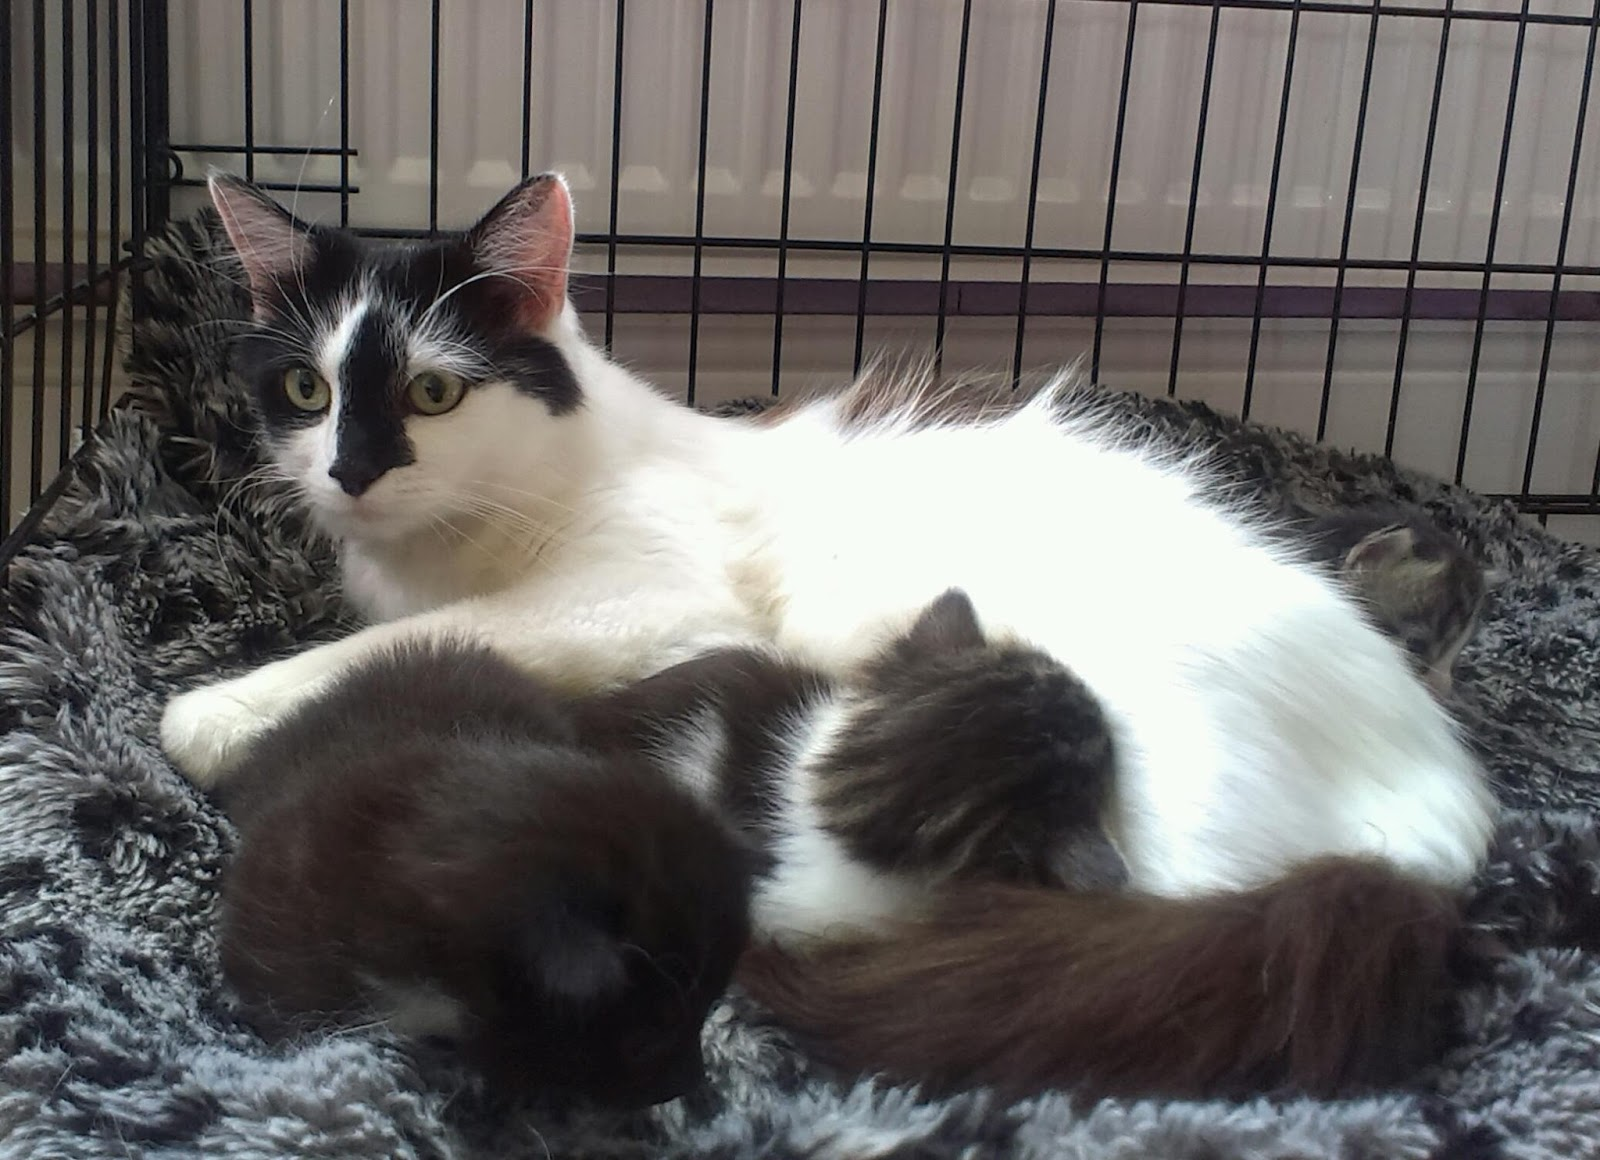 Black and white cat nursing kittens